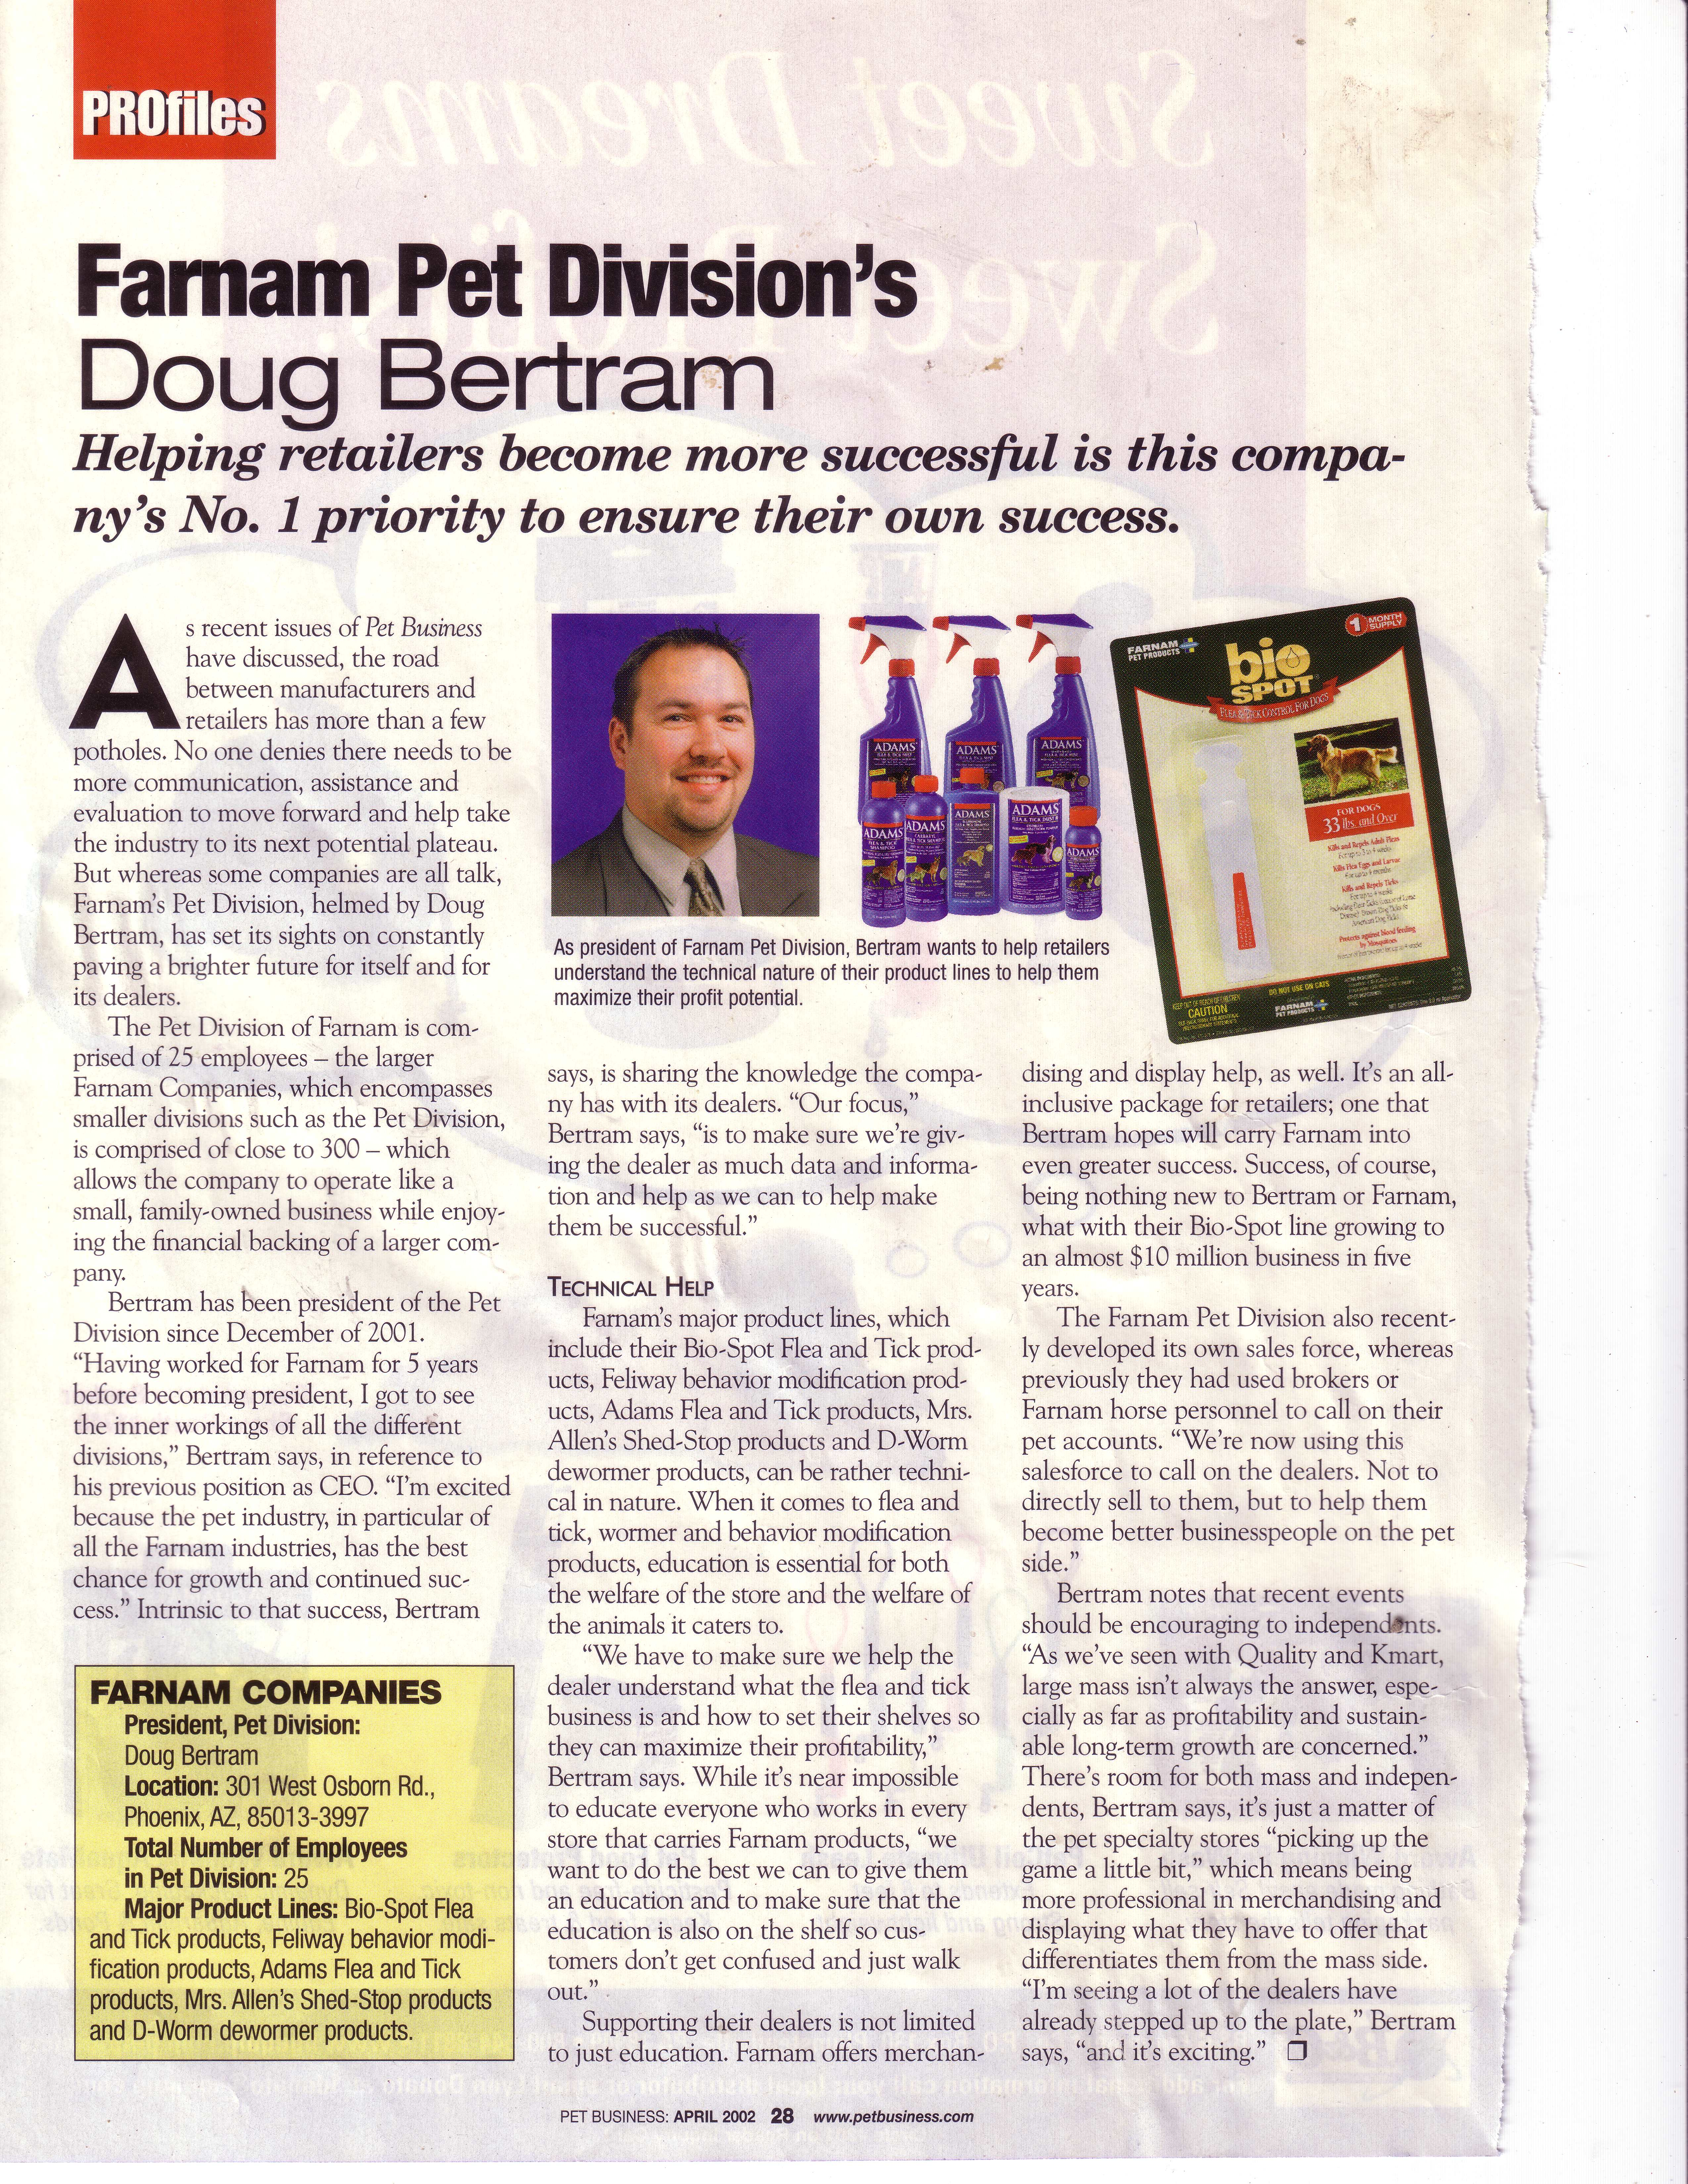 Doug Bertram profiled as Farnam Pet Division's